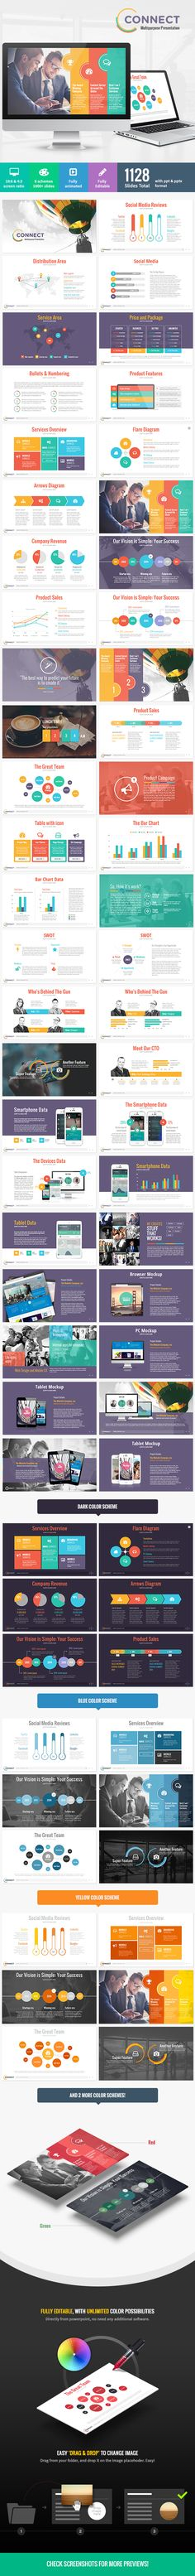 Connect - Modern Powerpoint Template